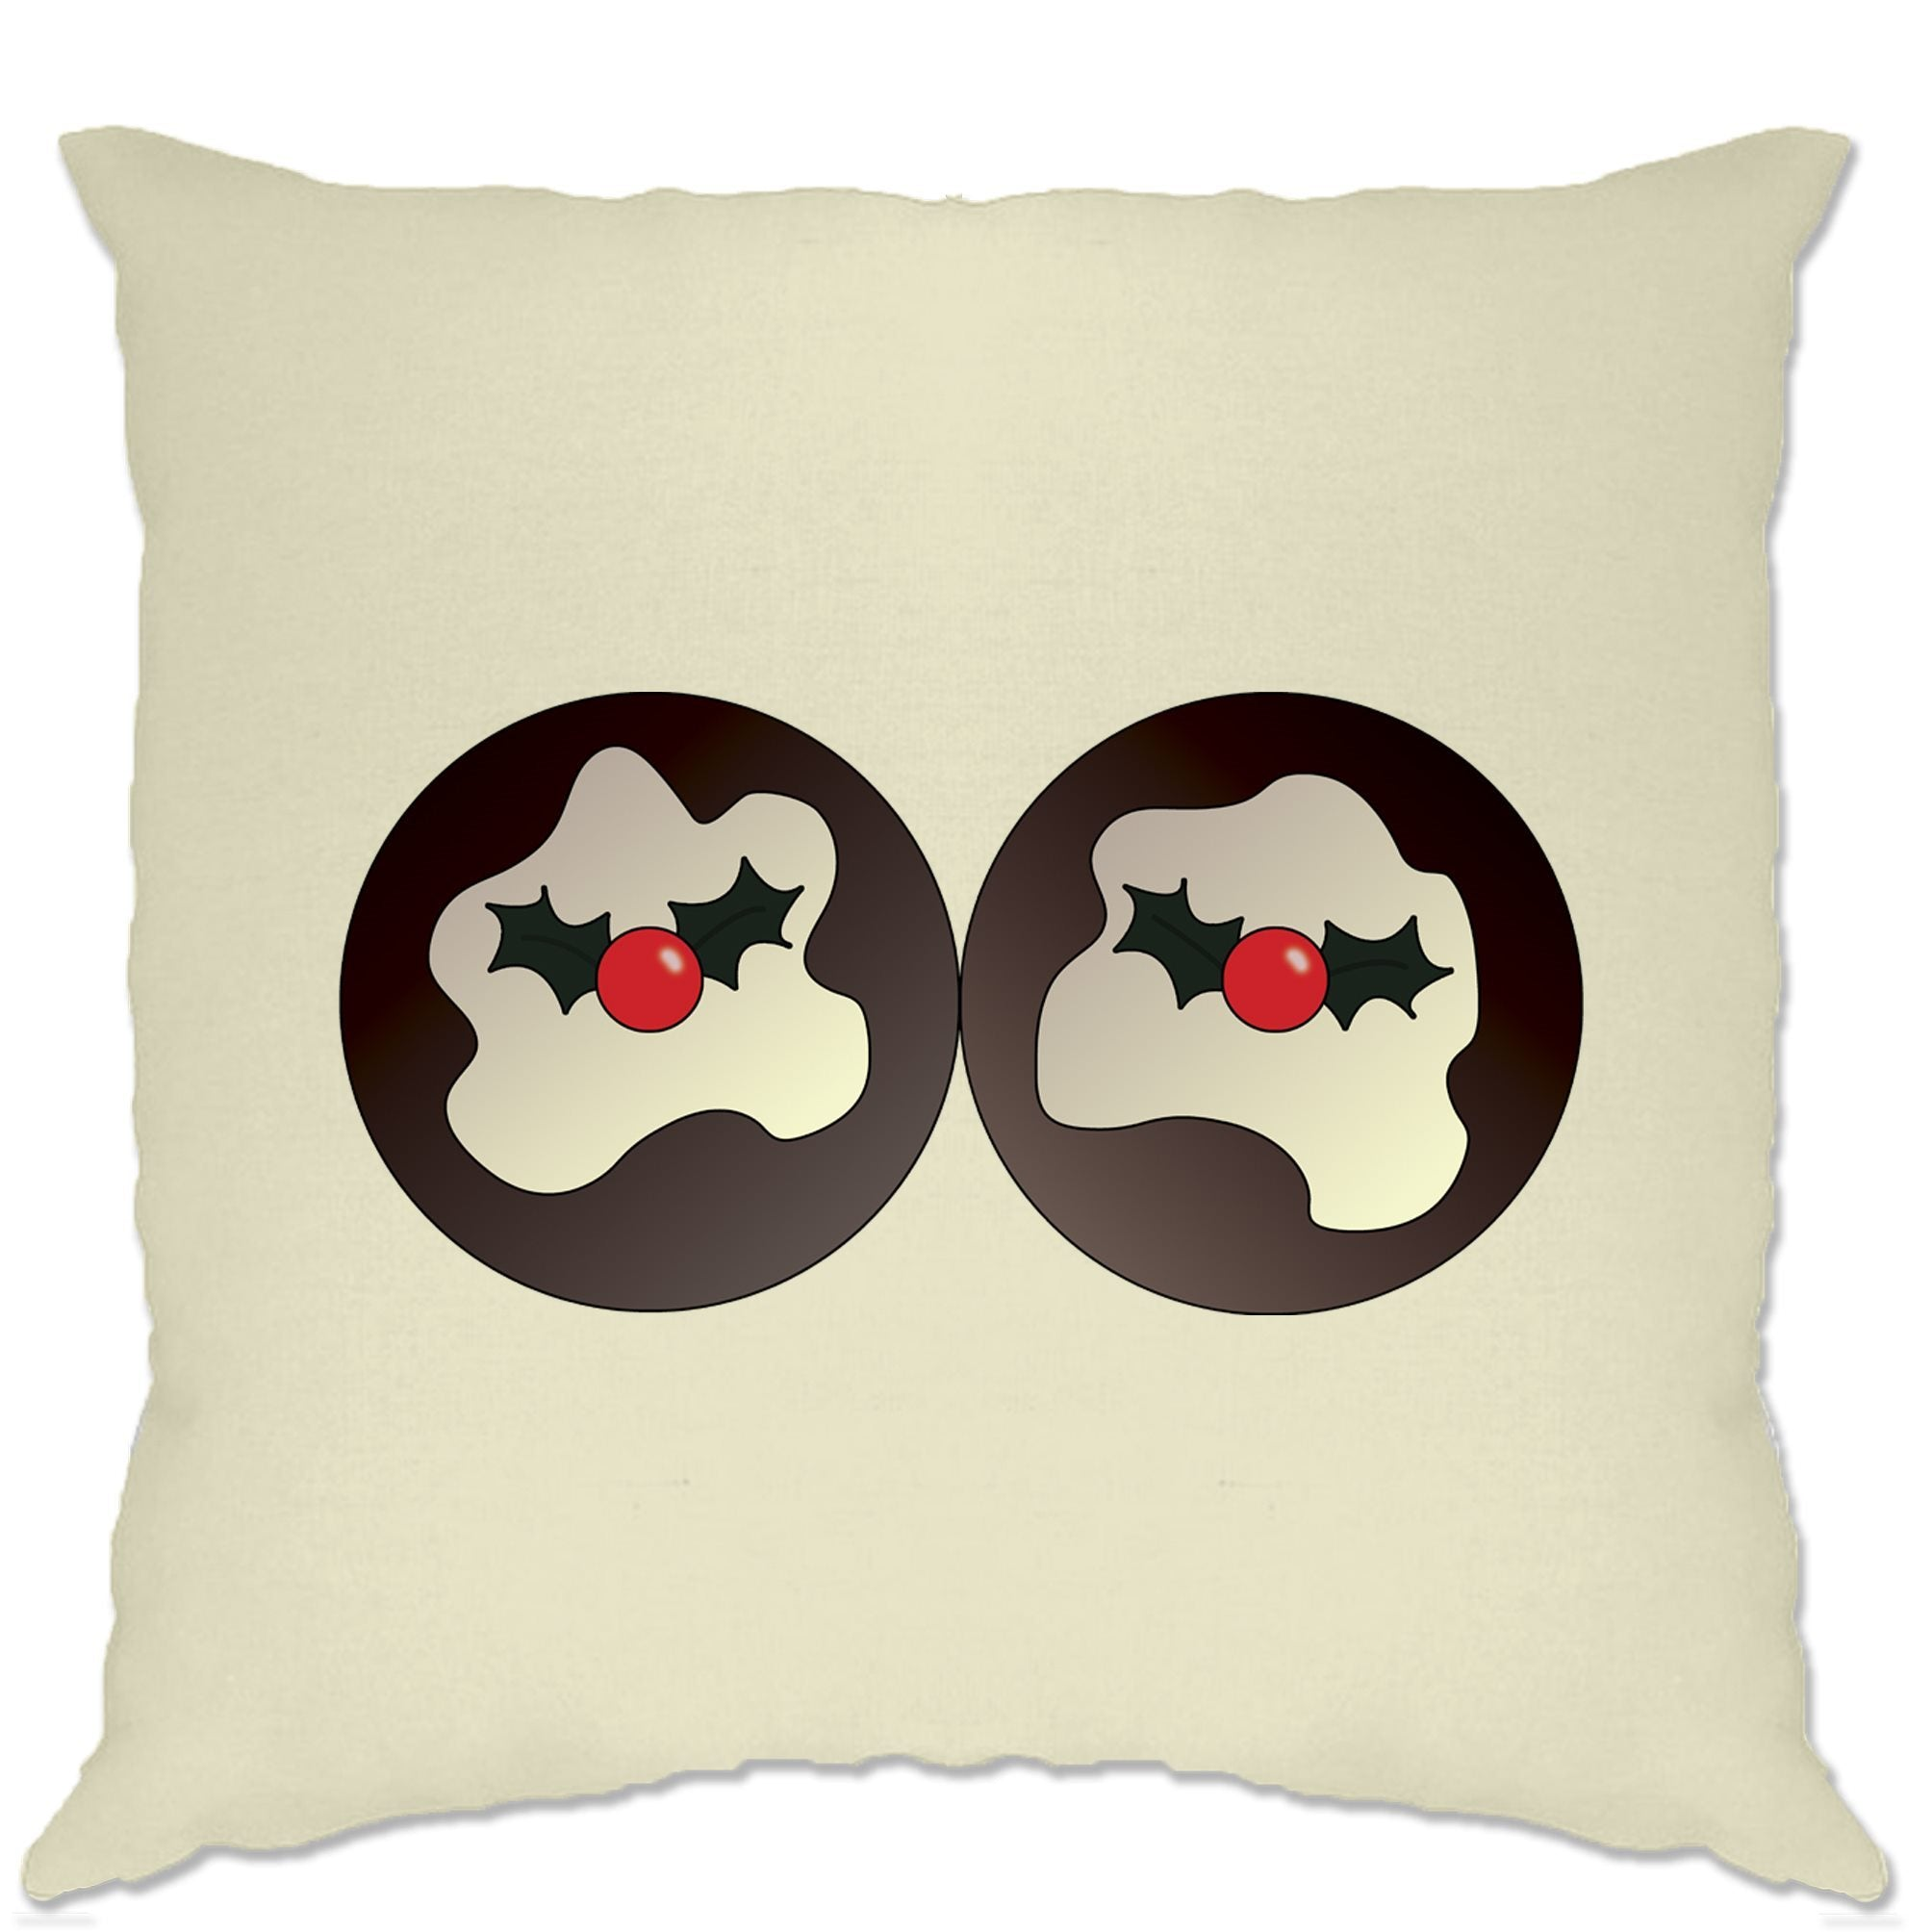 Rude Xmas Cushion Cover Christmas Pudding Breasts